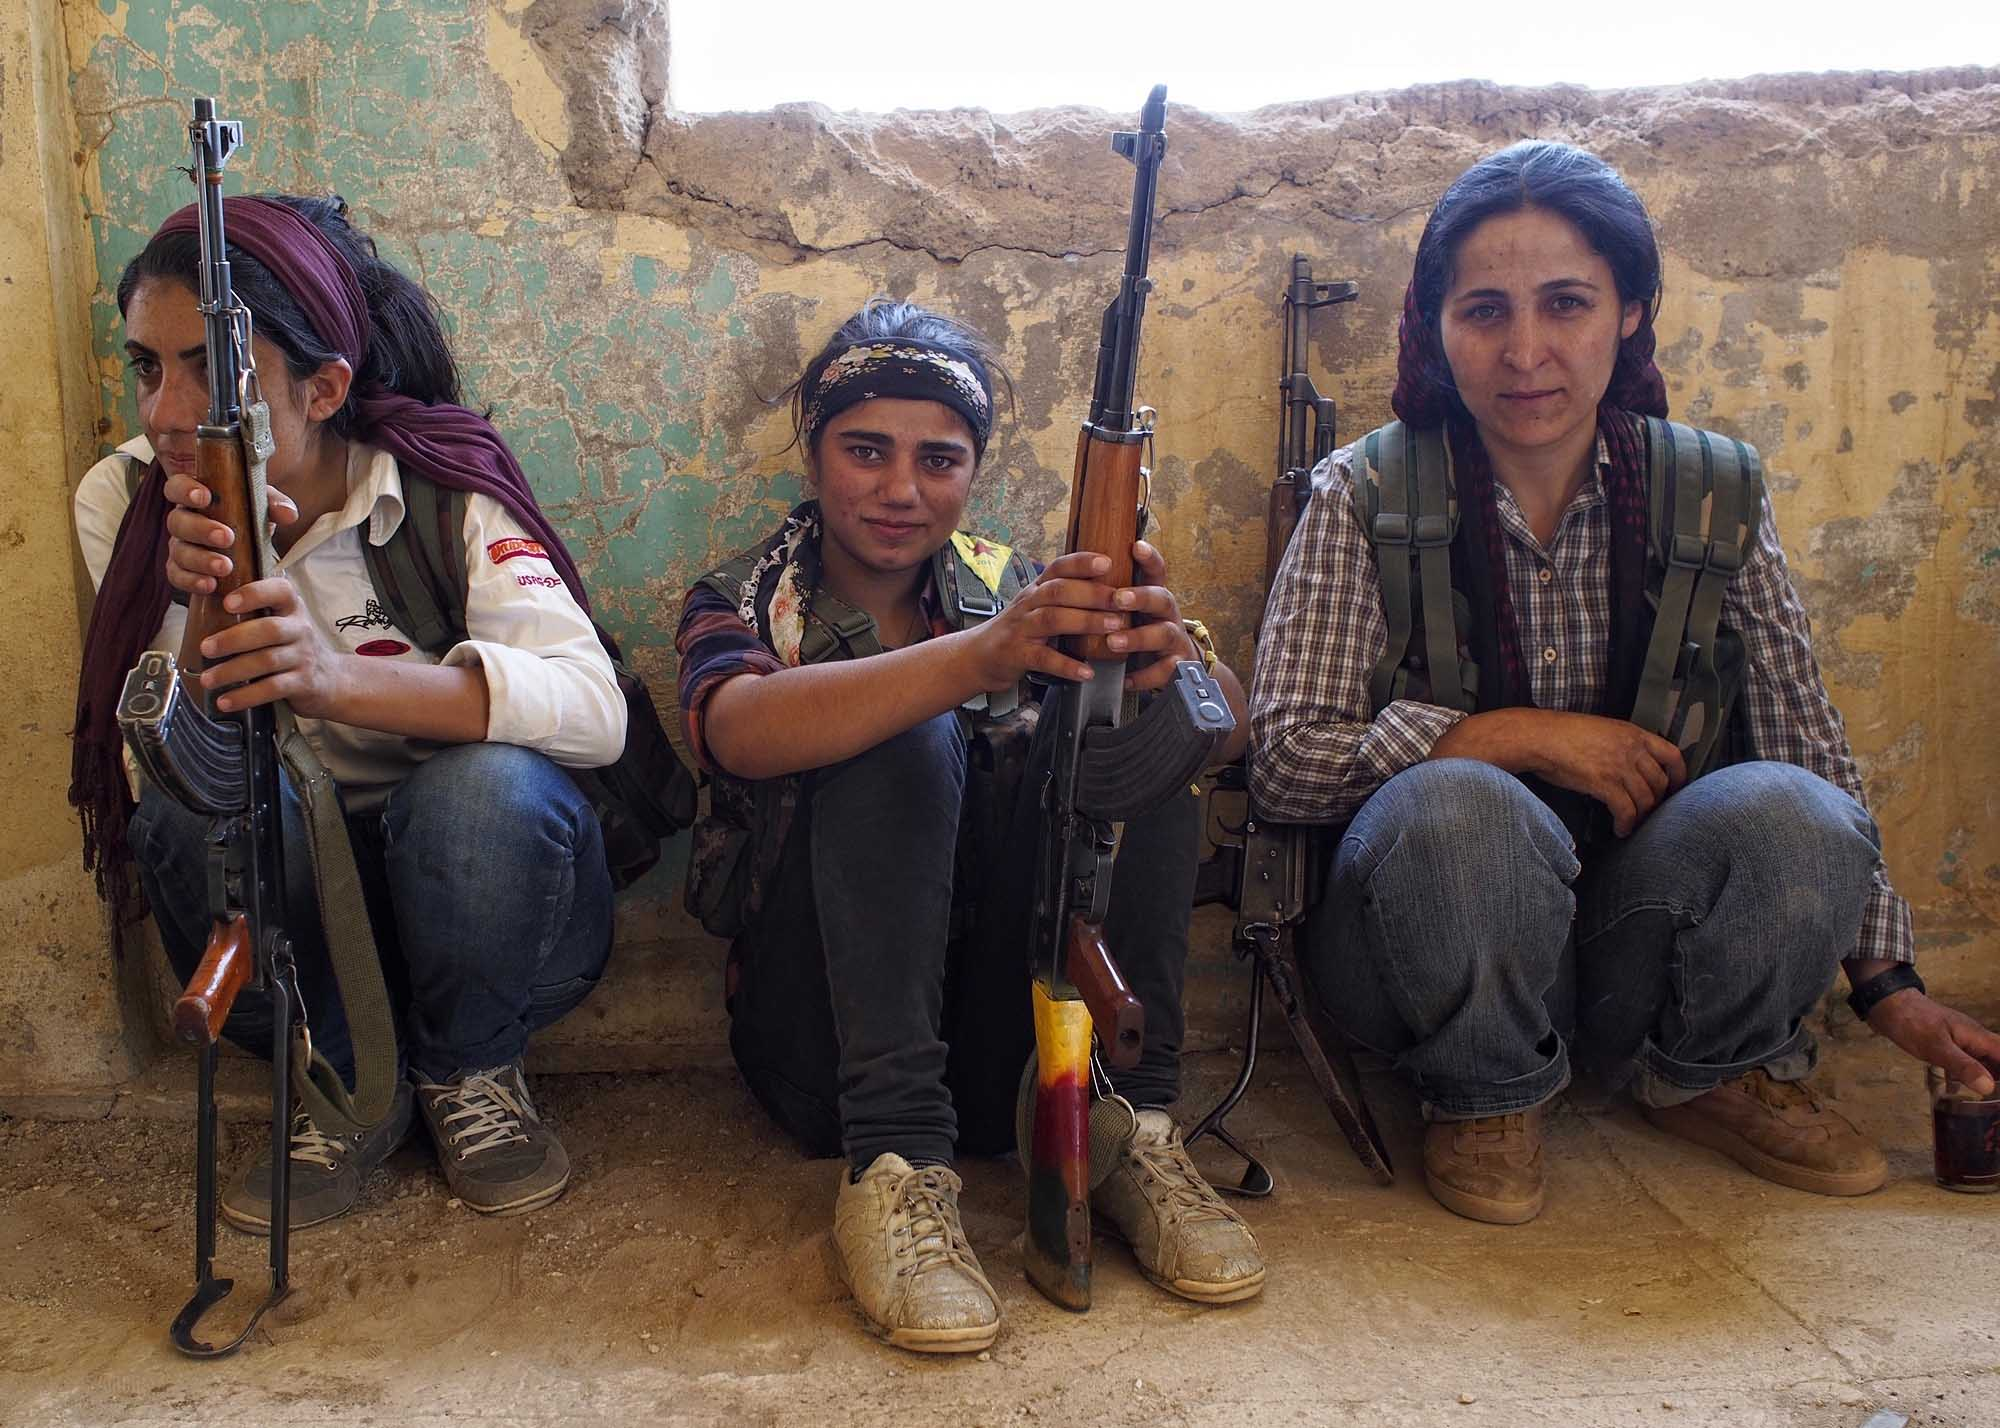 Don't let Kobane be slaughtered | Mato's Blog